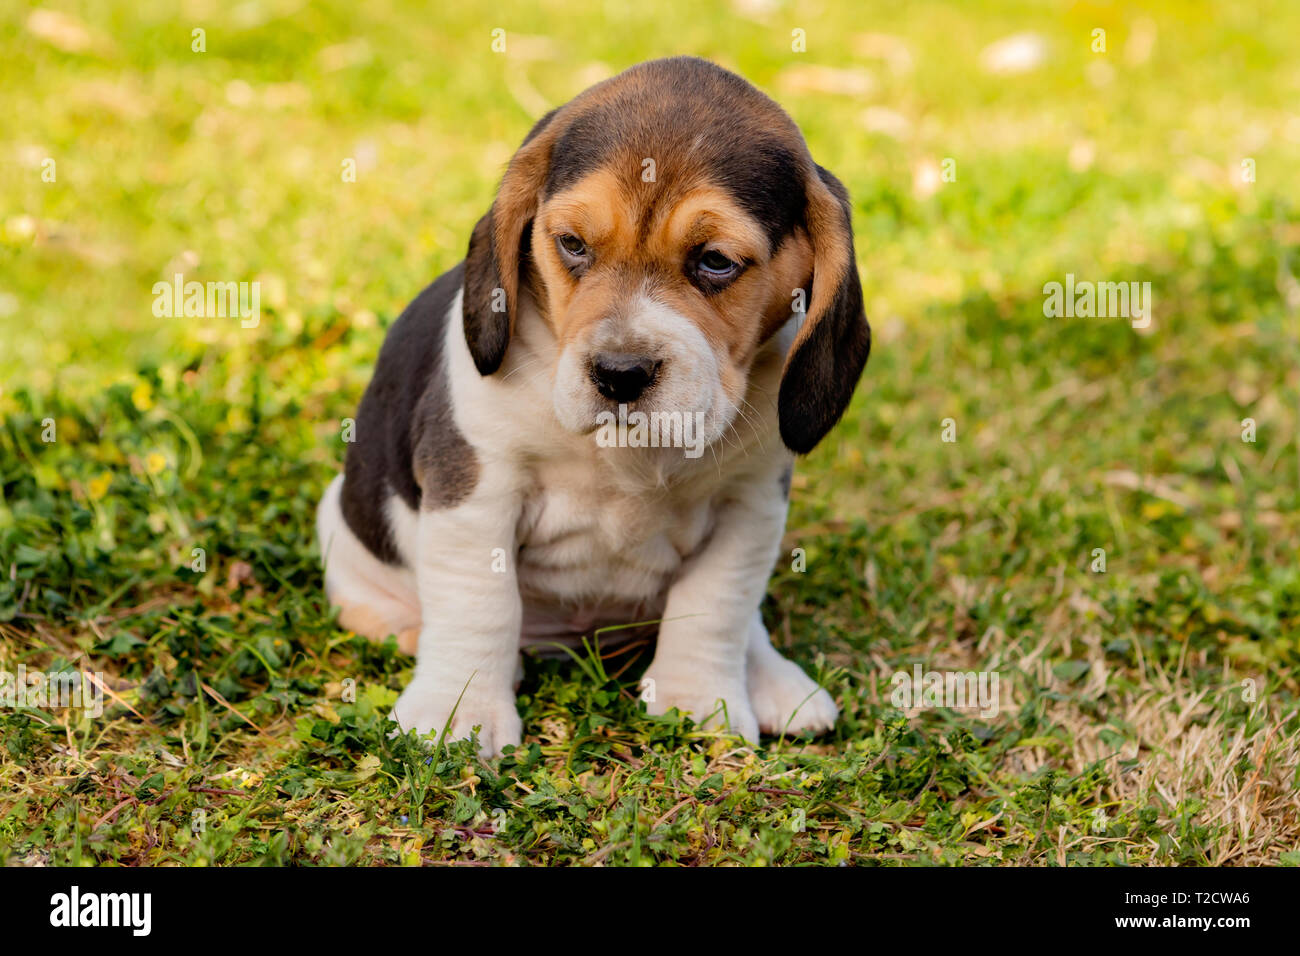 Beautiful Beagle Puppy Brown And Black On The Green Grass Stock Photo Alamy